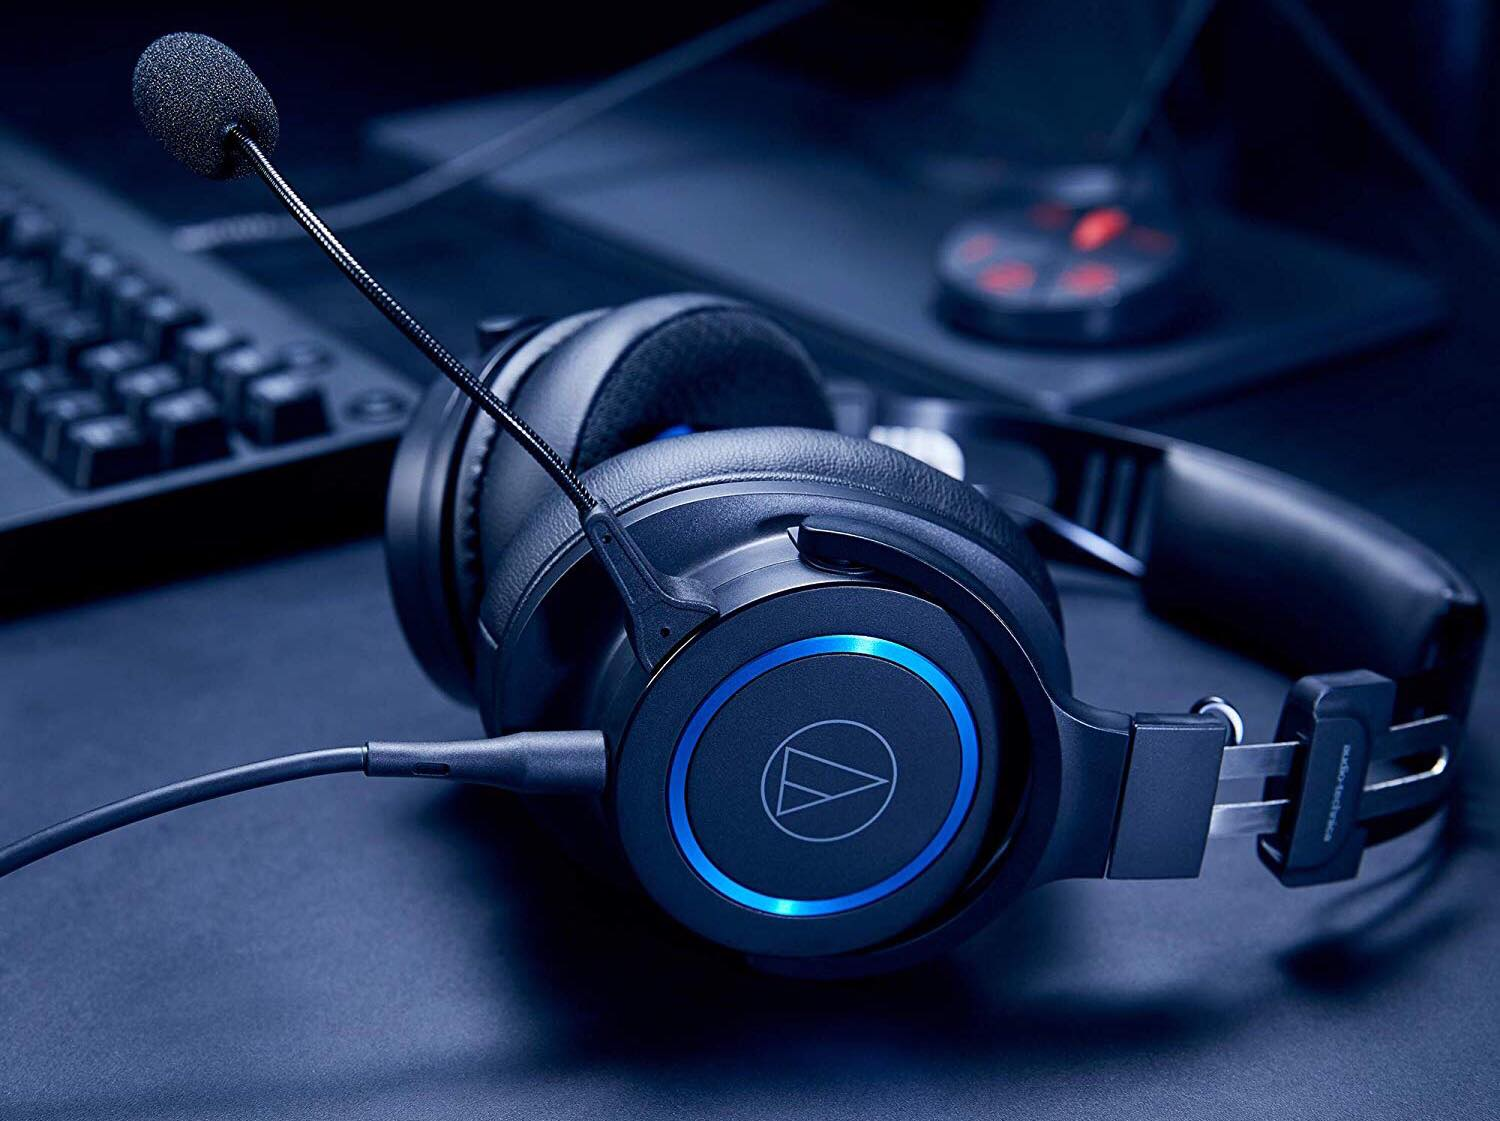 Audio-Technica ATH-G1 gaming headset. ($169 for wired, or 249 for wireless version)